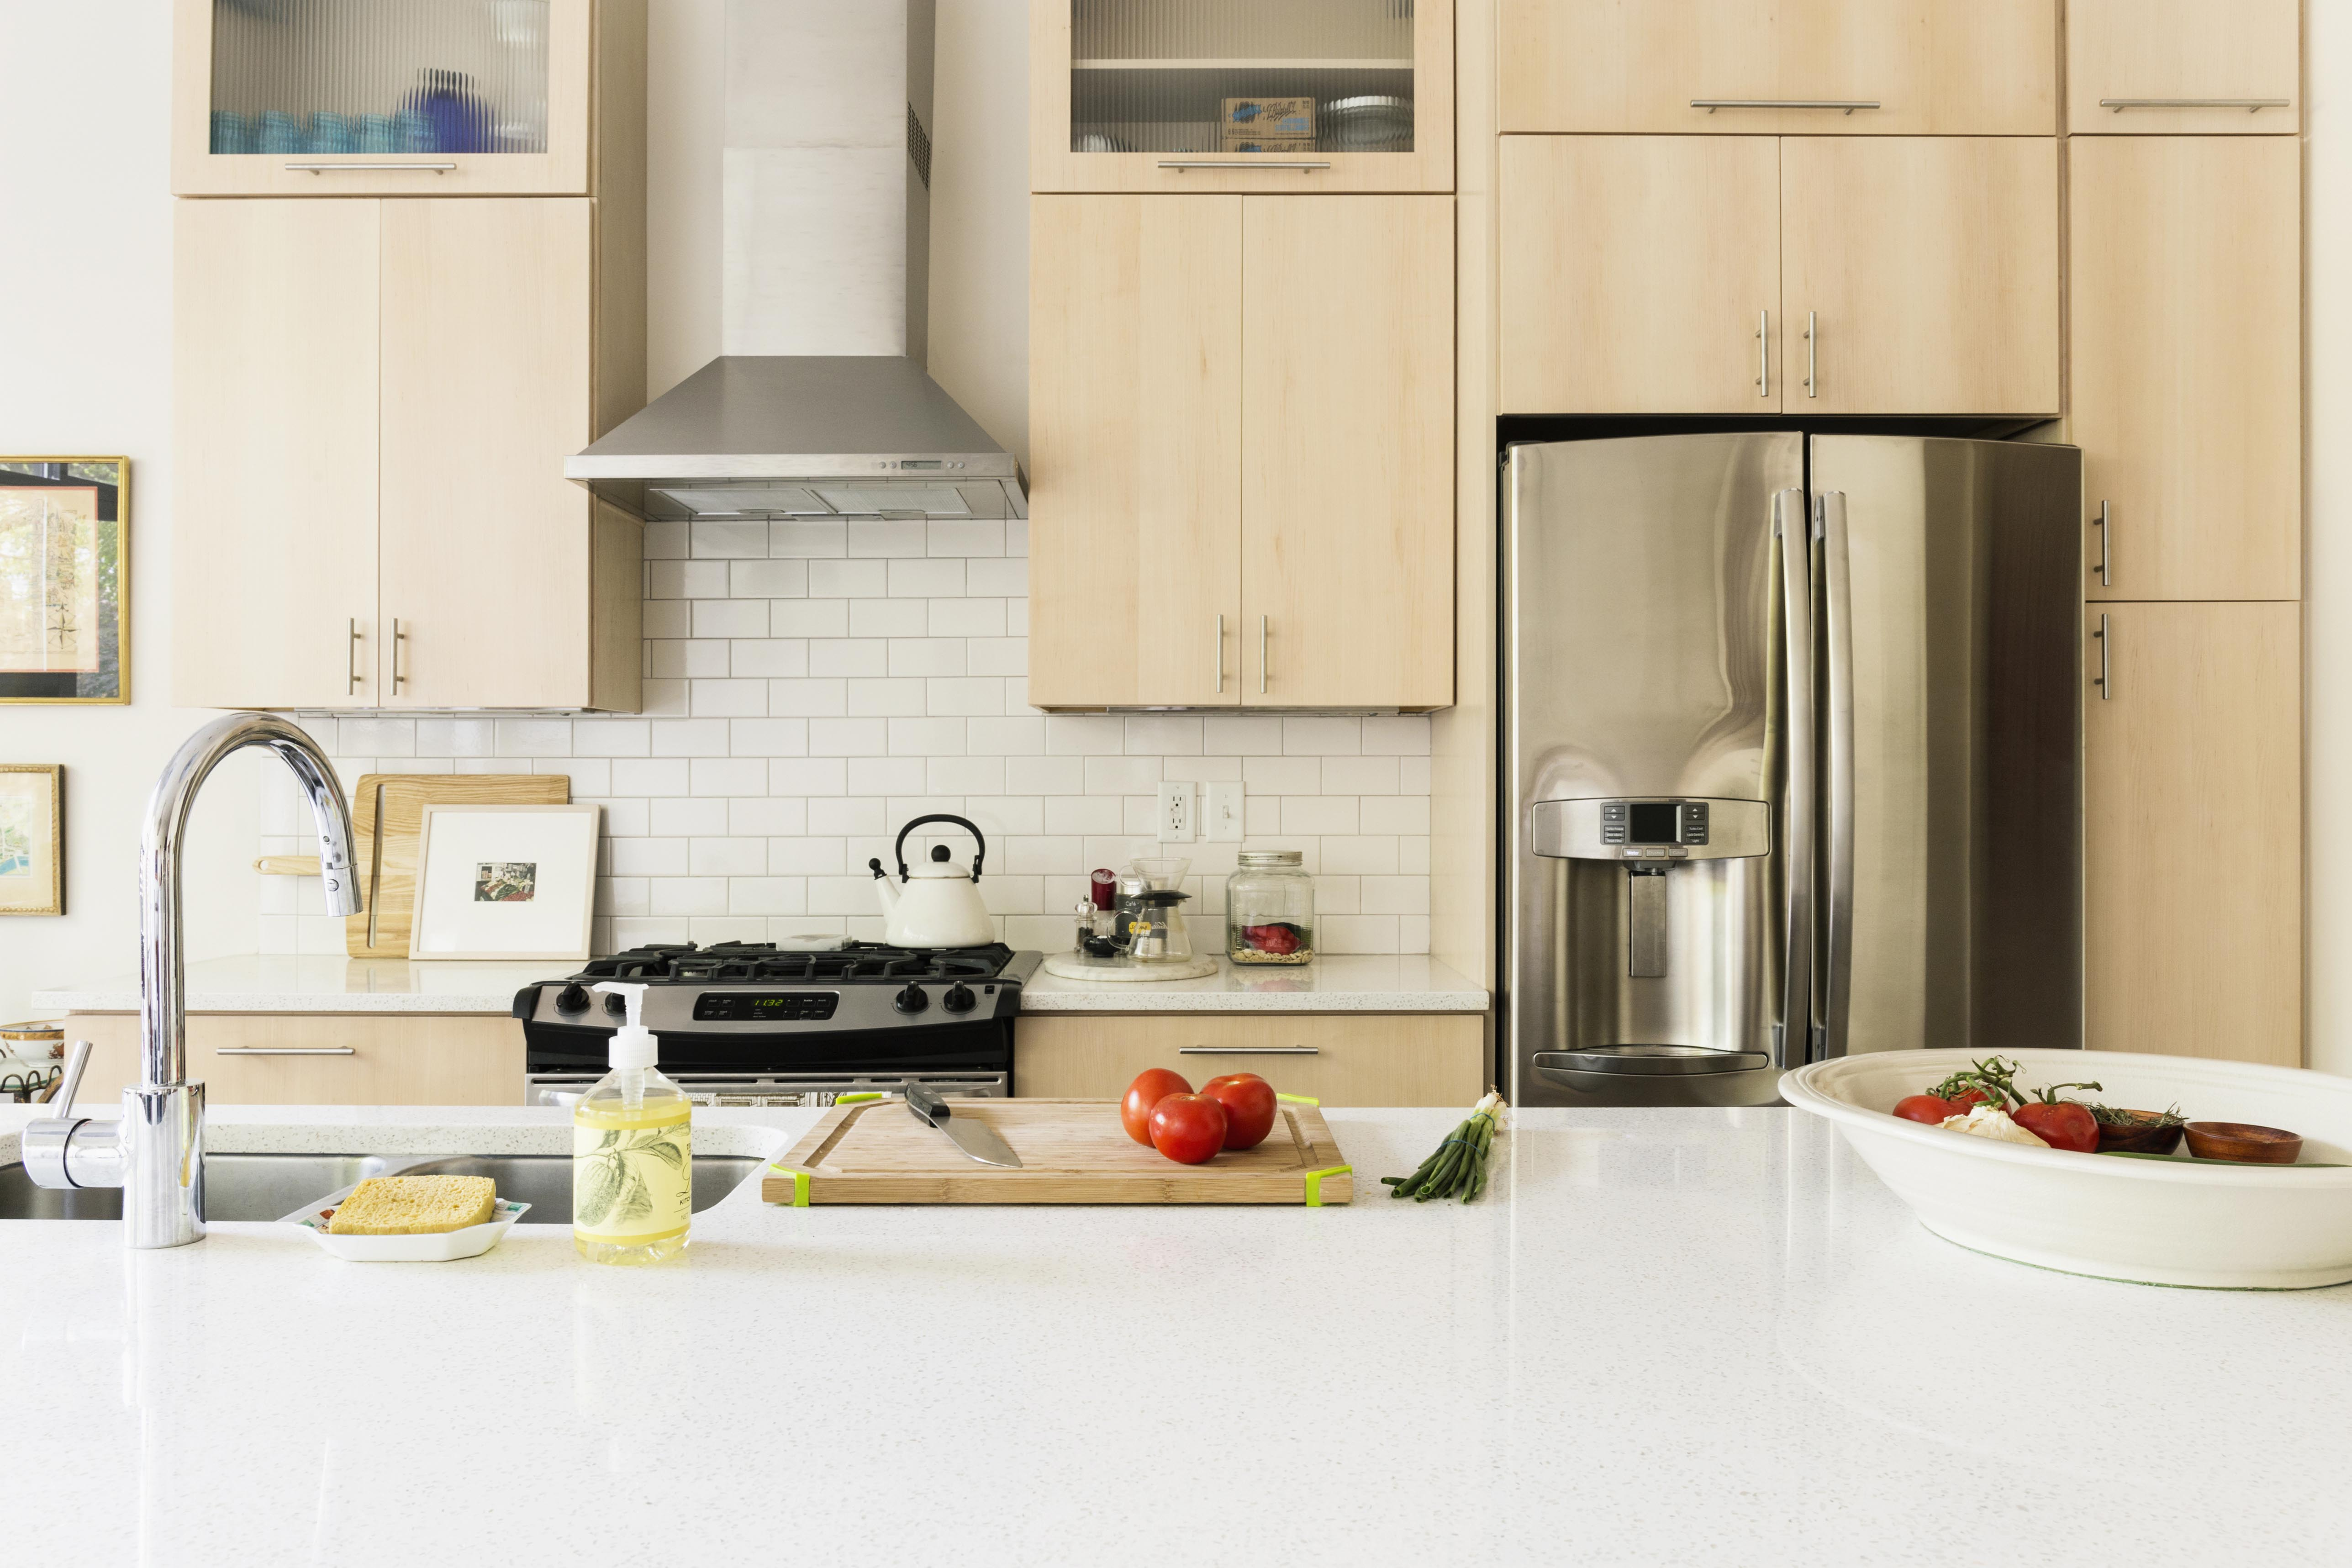 Things You Should Clean Every Day Daily Cleaning Chores